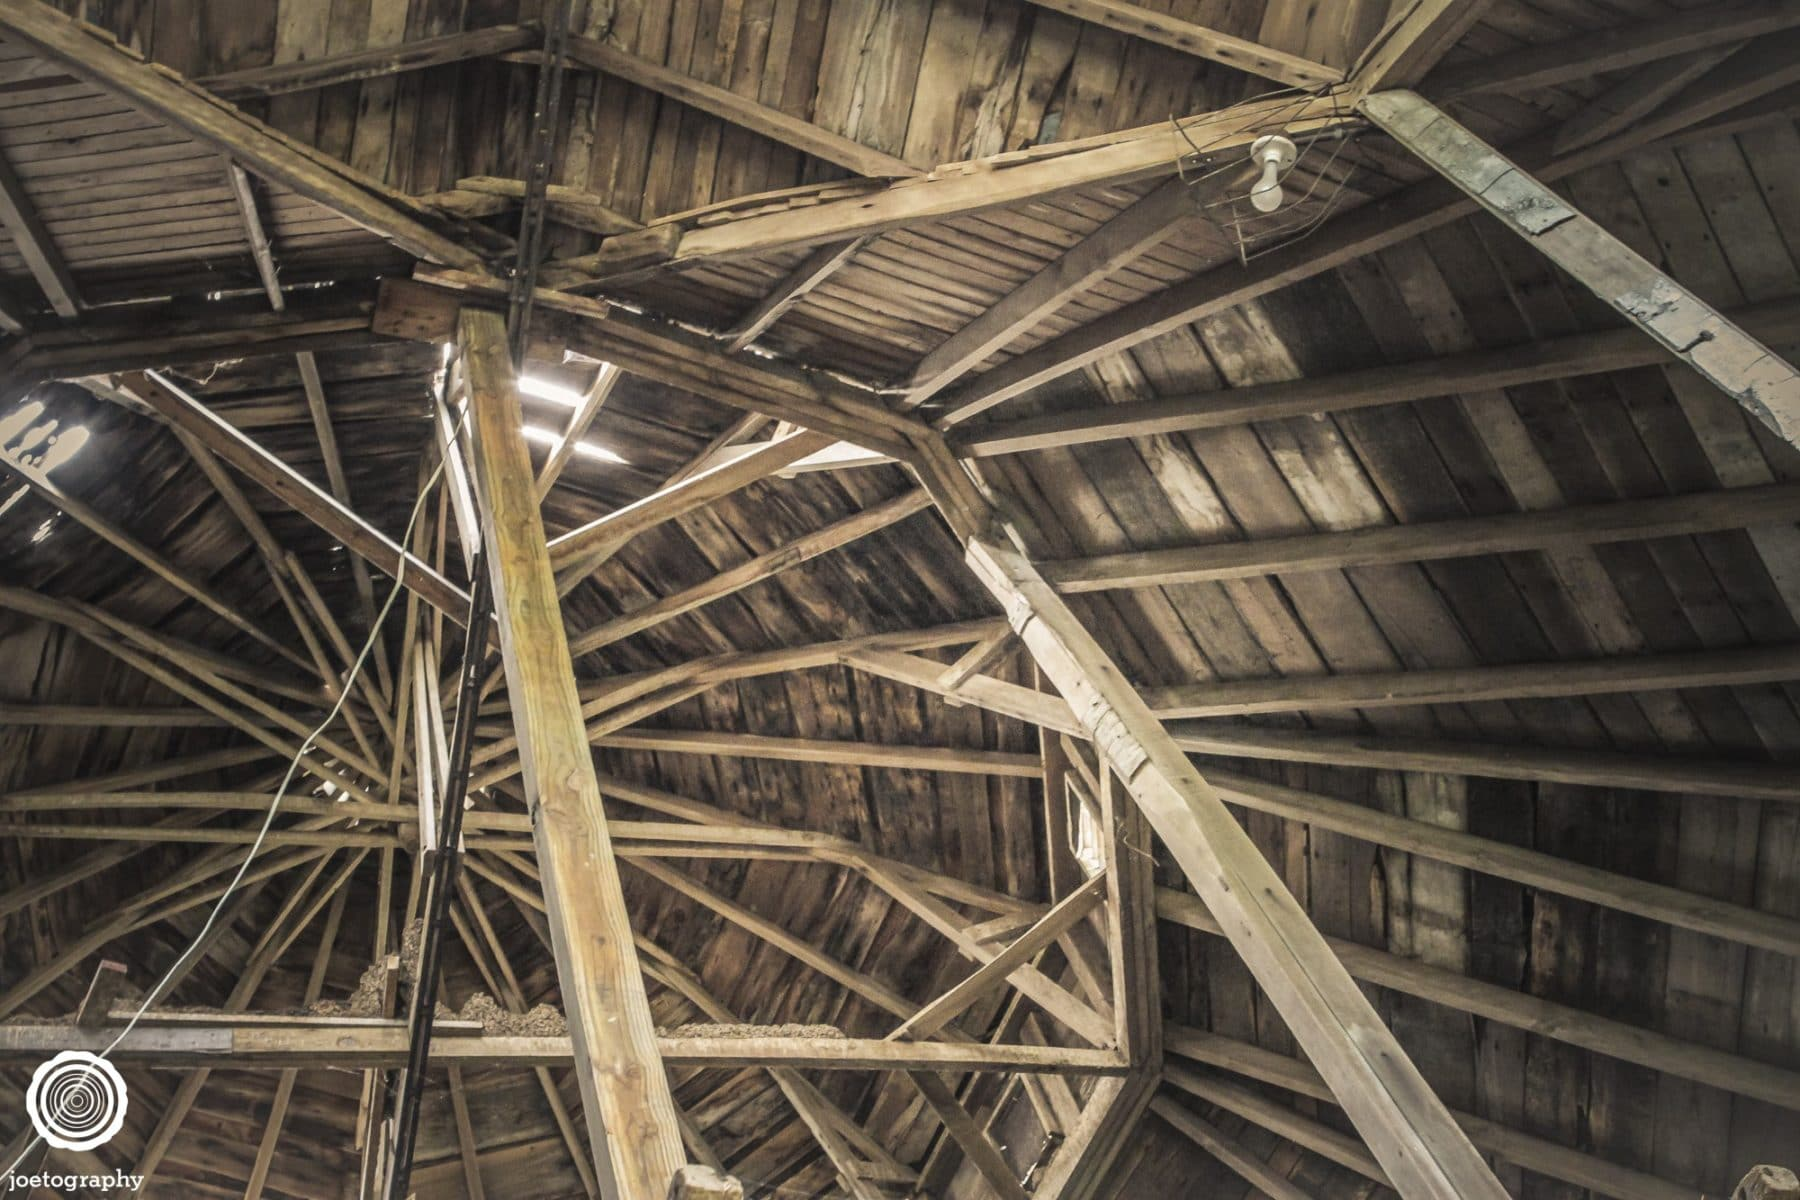 polygonal-barn-architecture-photos-shelbyville-indiana-11